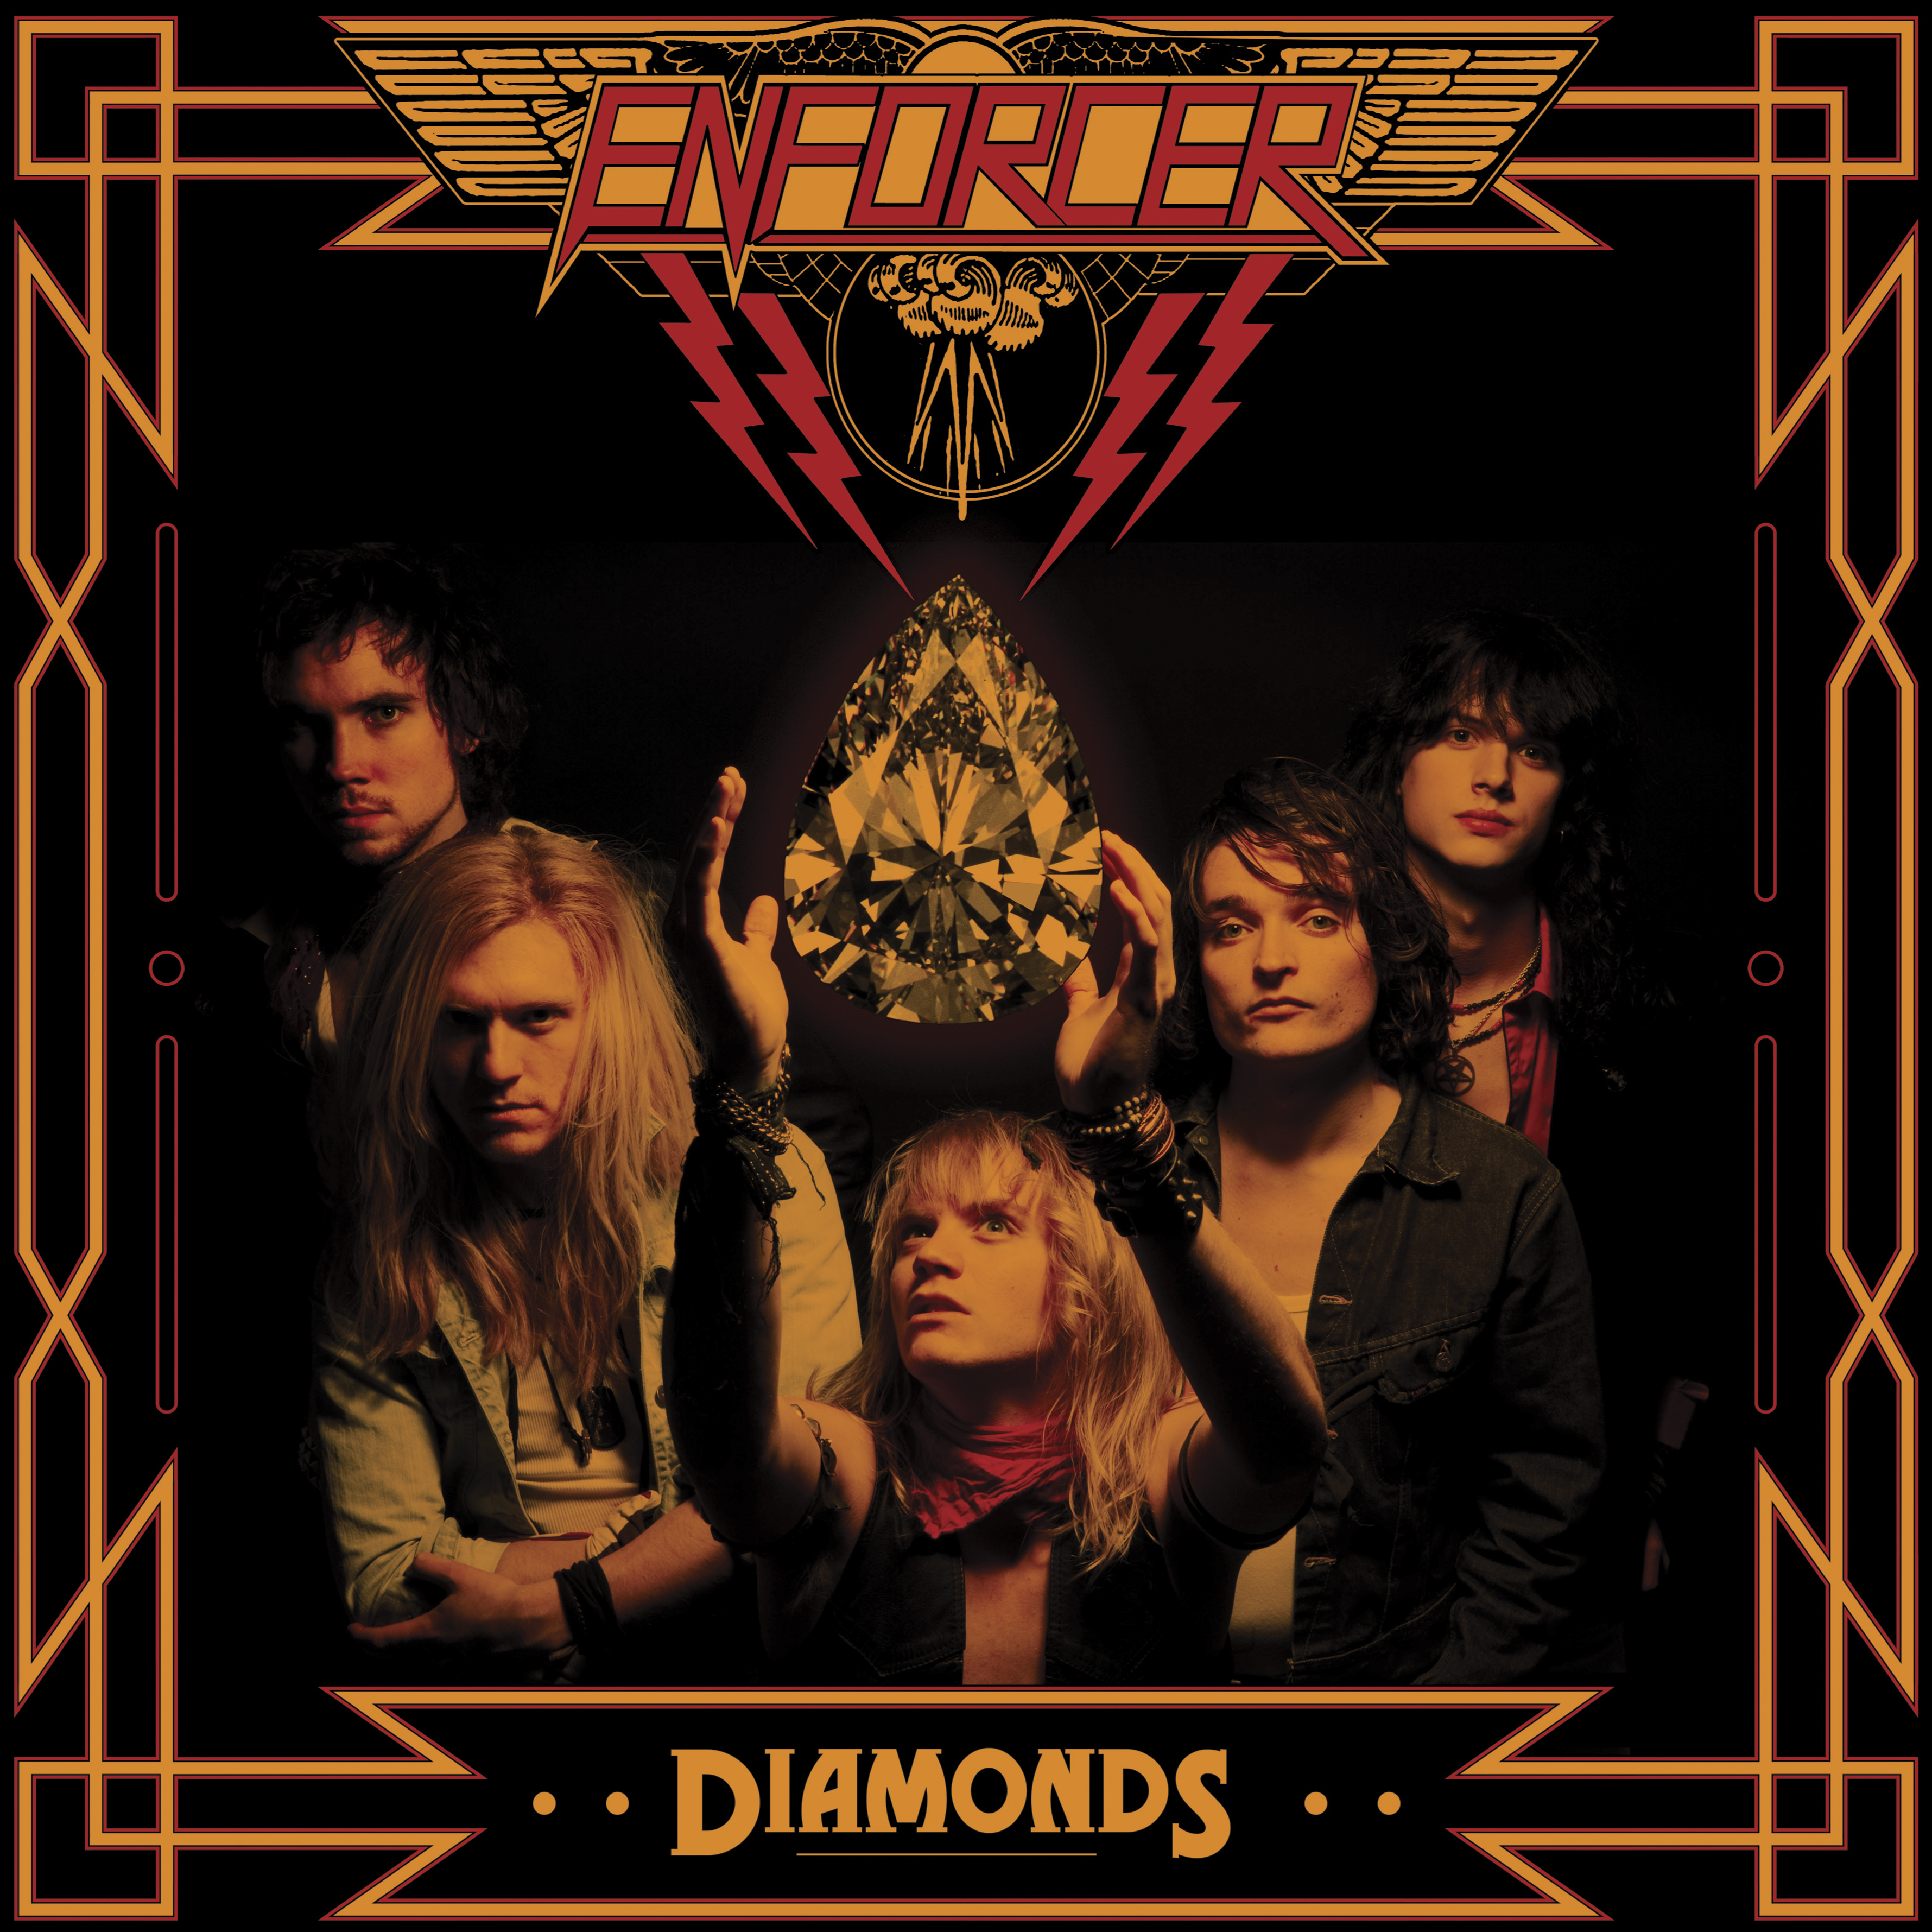 Enforcer – Diamonds Review